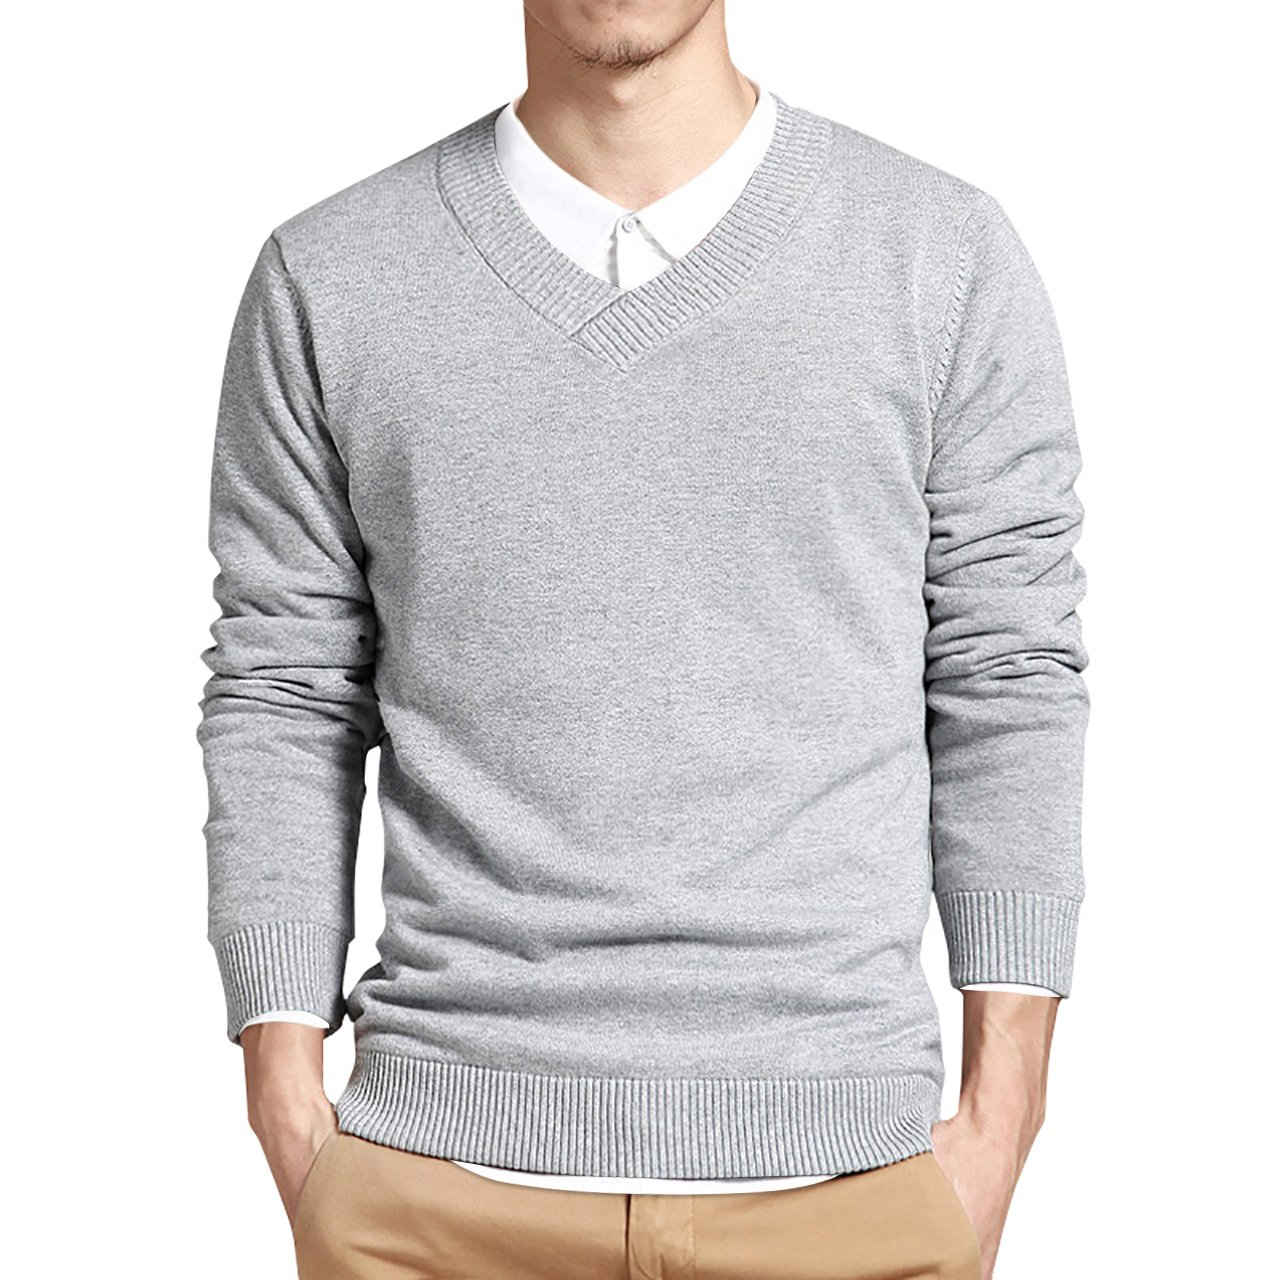 LTIFONE Mens Slim Comfortably Knitted Long Sleeve V-Neck Sweaters (Large, Grey)